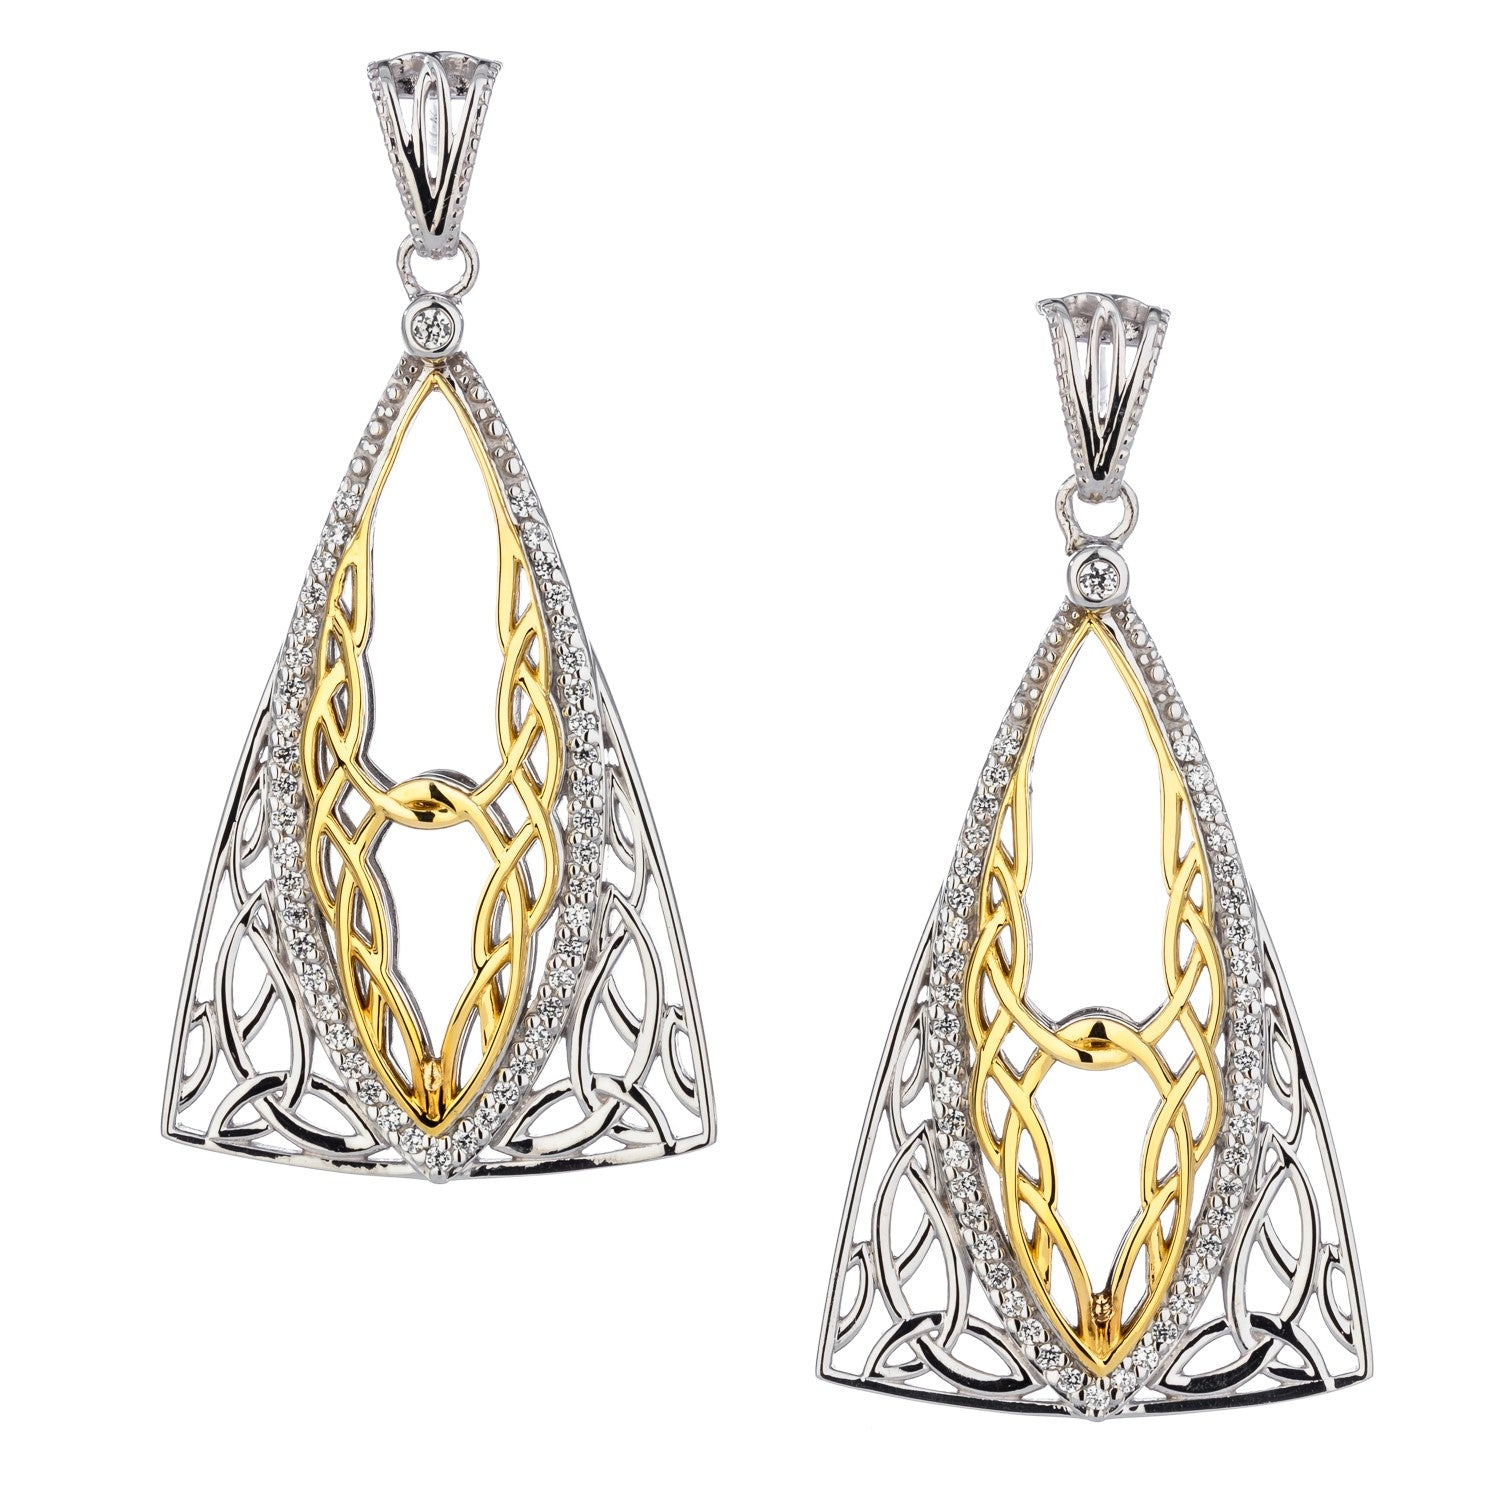 Tower Gateway Earrings